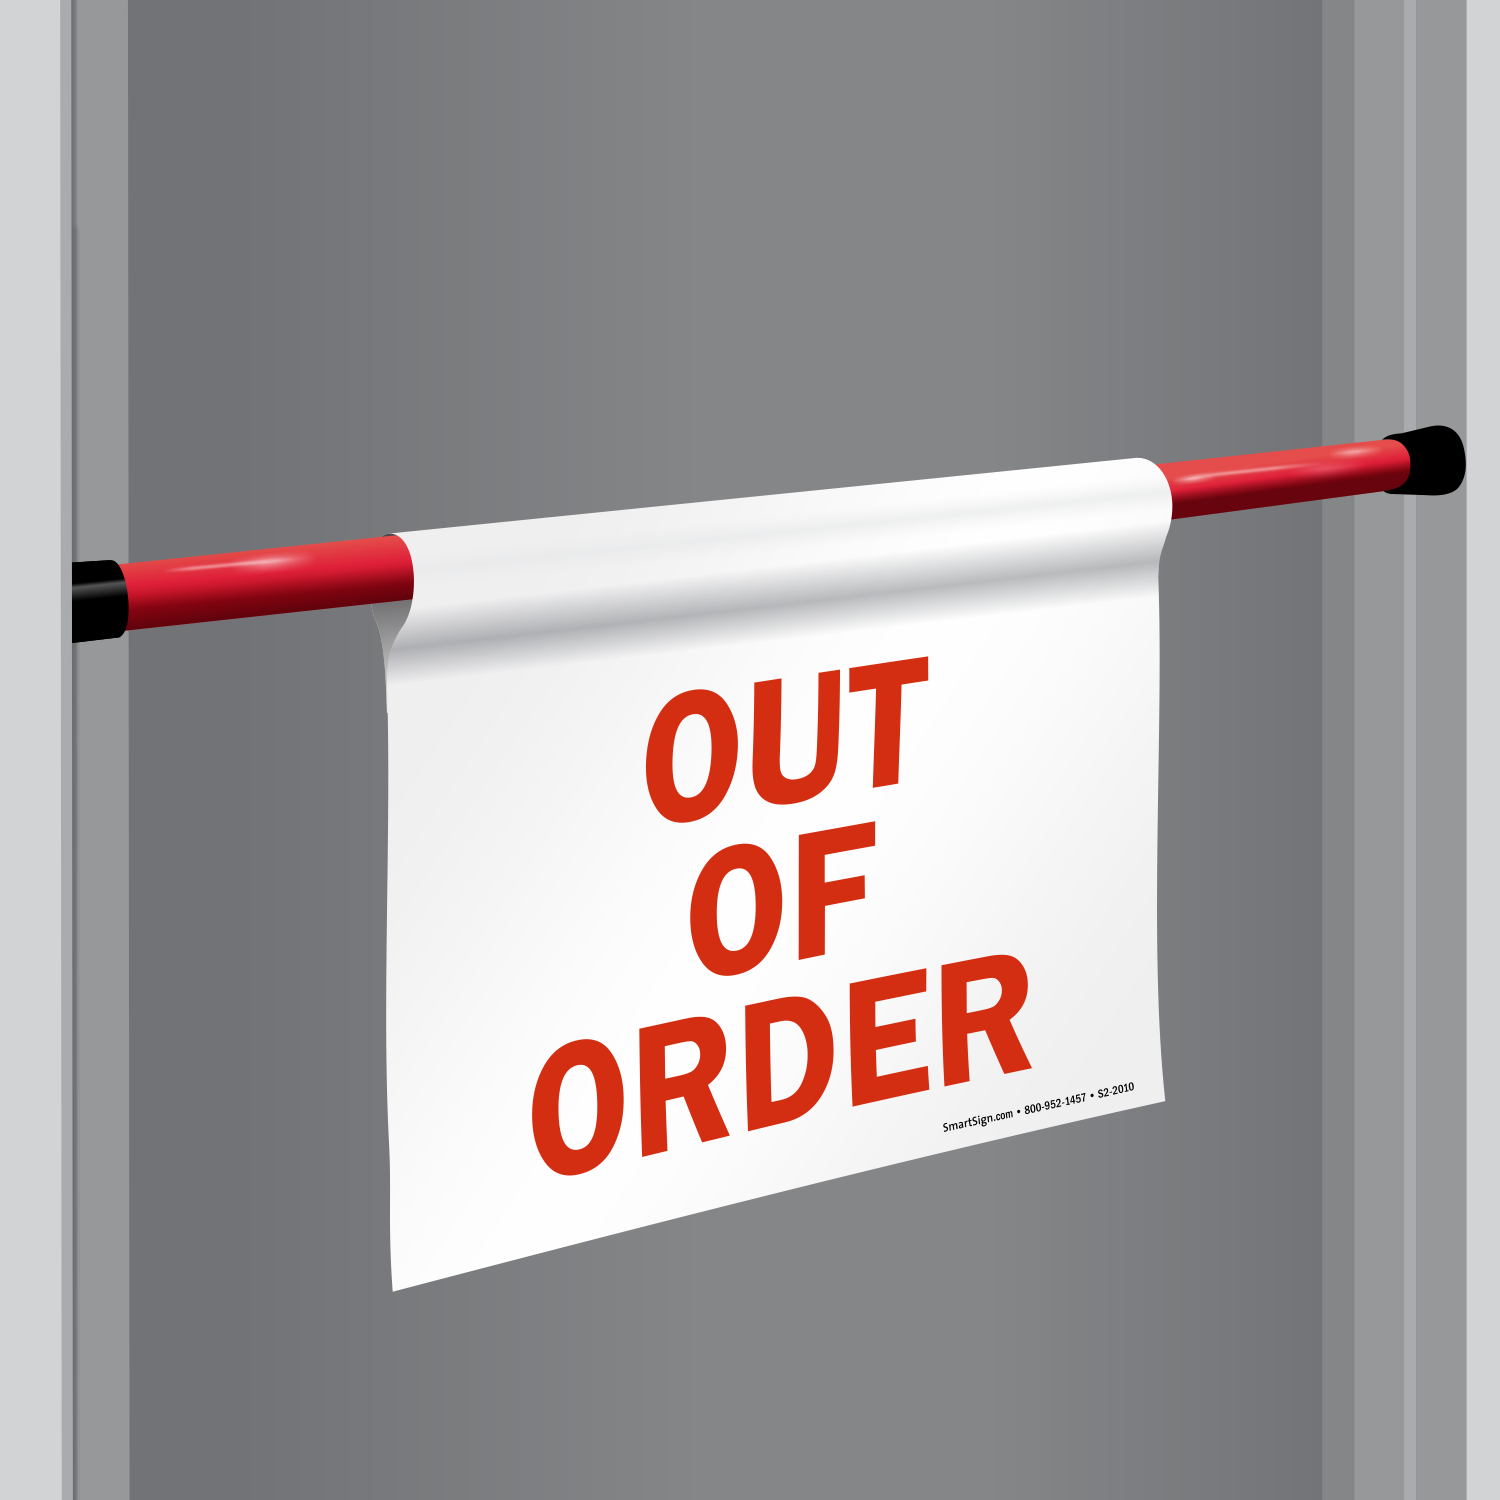 Zoom Price Buy & Out of Order Signs - Machine Under Service